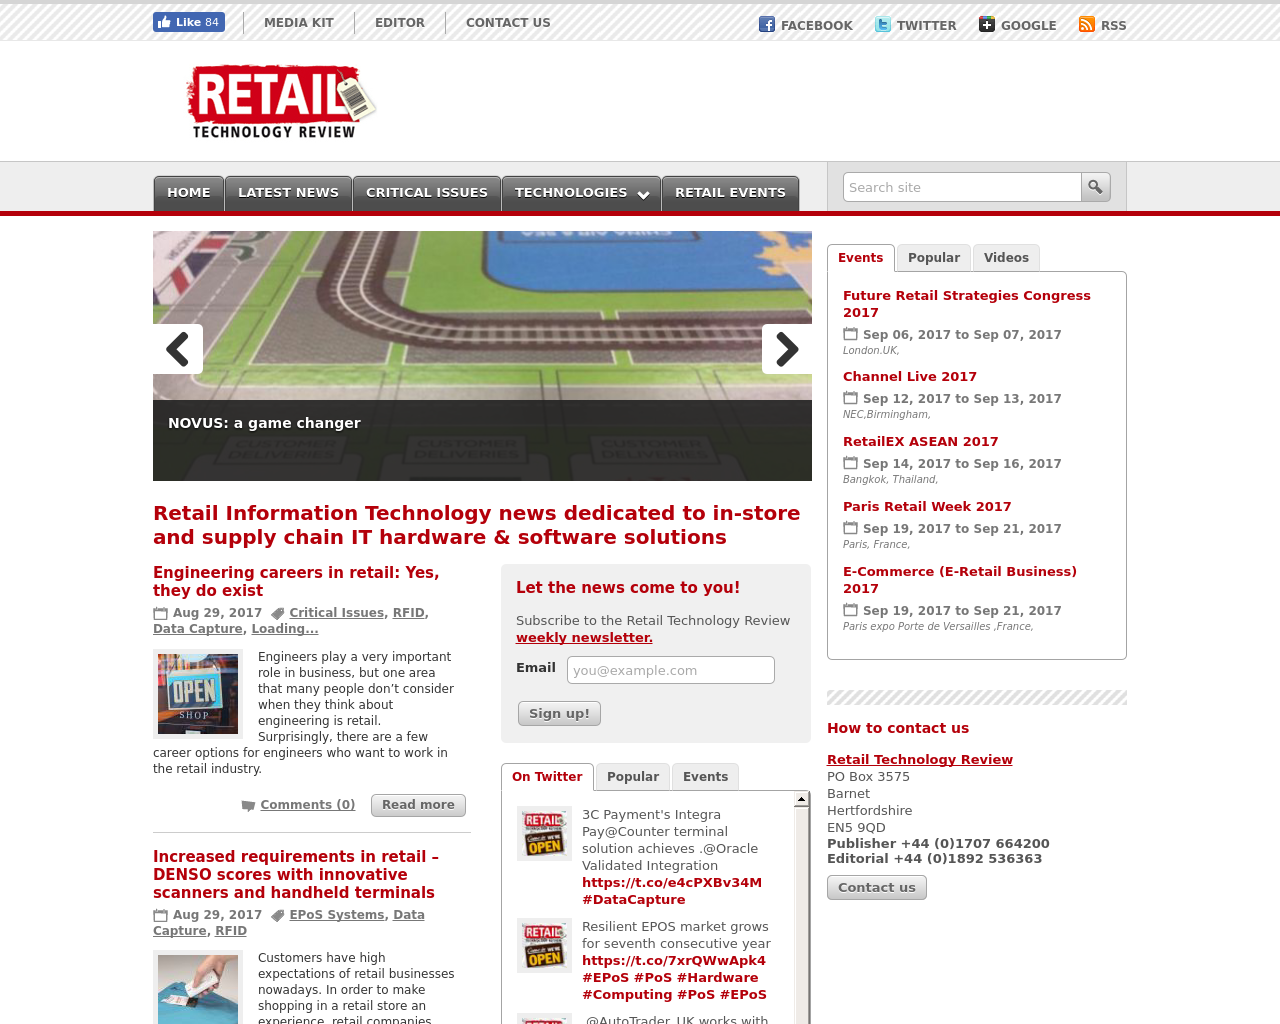 Retail-Technology-Review-Advertising-Reviews-Pricing